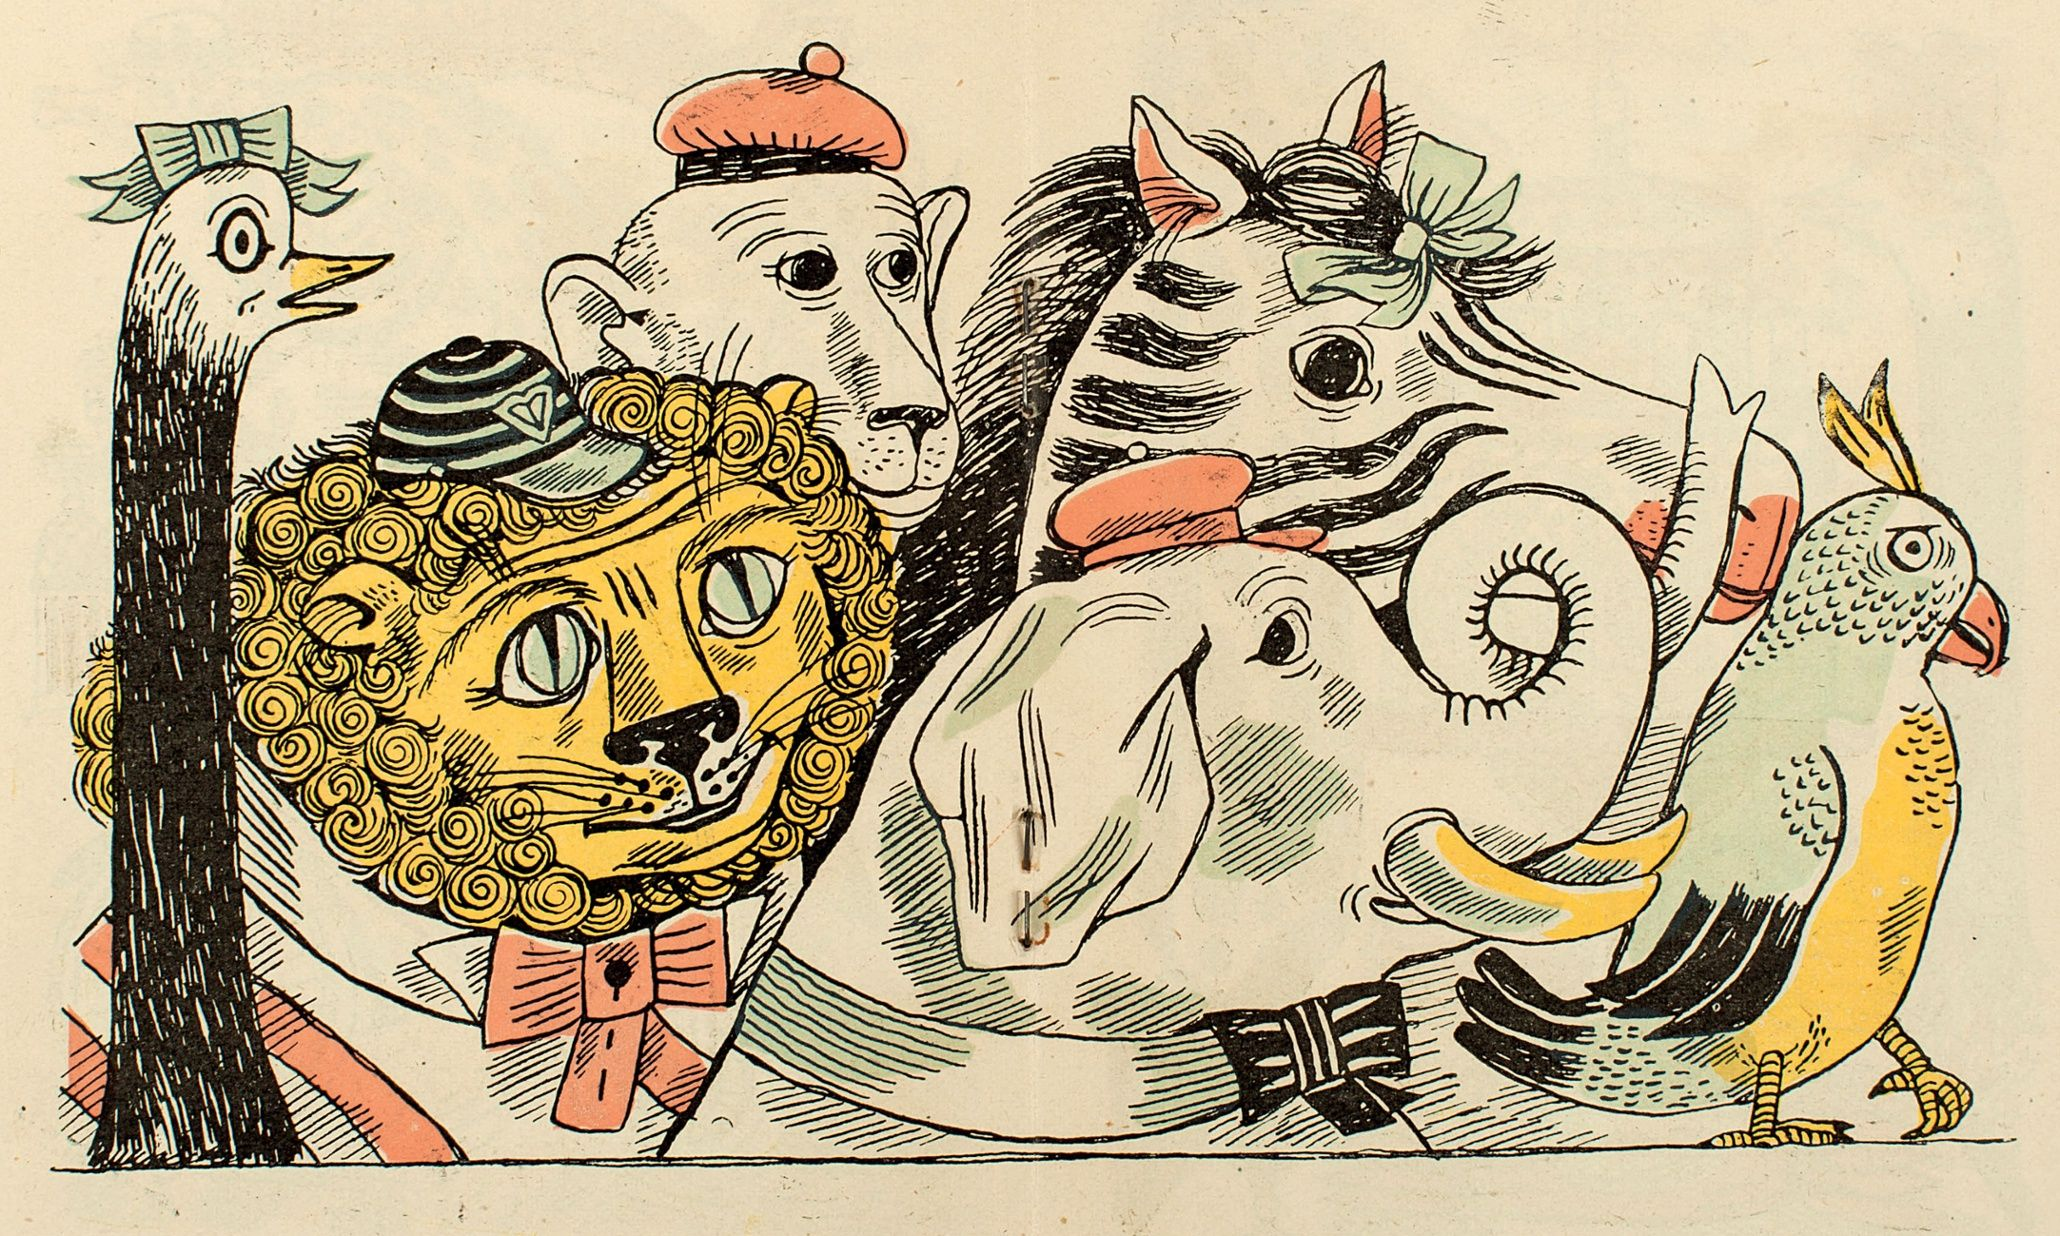 http://www.theguardian.com/artanddesign/gallery/2015/apr/06/100-great-childrens-picture-books-highlights-from-1922-2011?CMP=share_btn_fb